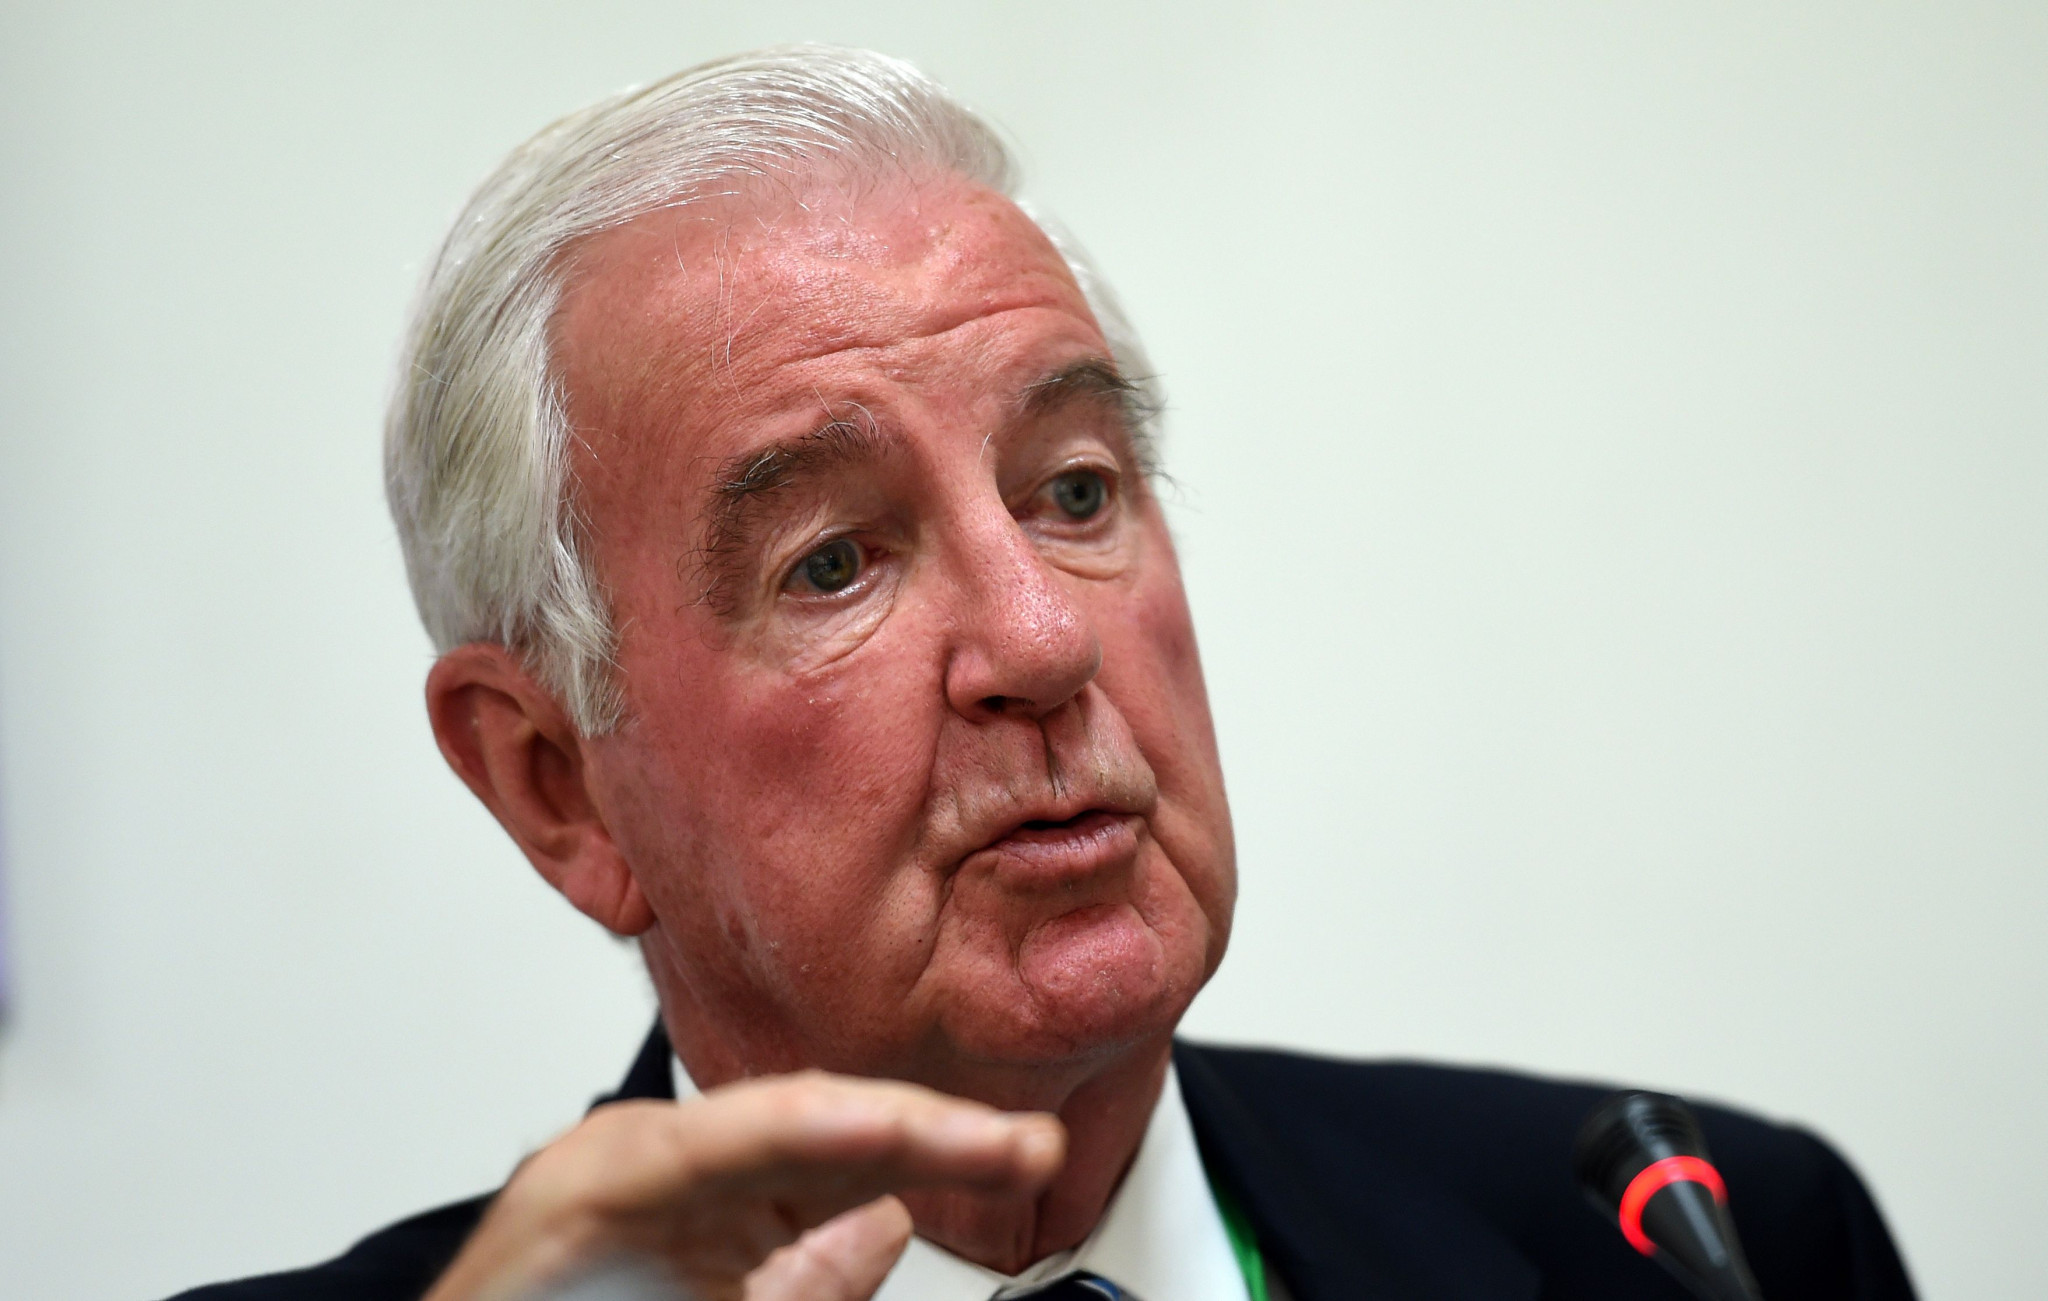 WADA President Sir Craig Reedie will give a keynote address at the symposium ©Getty Images